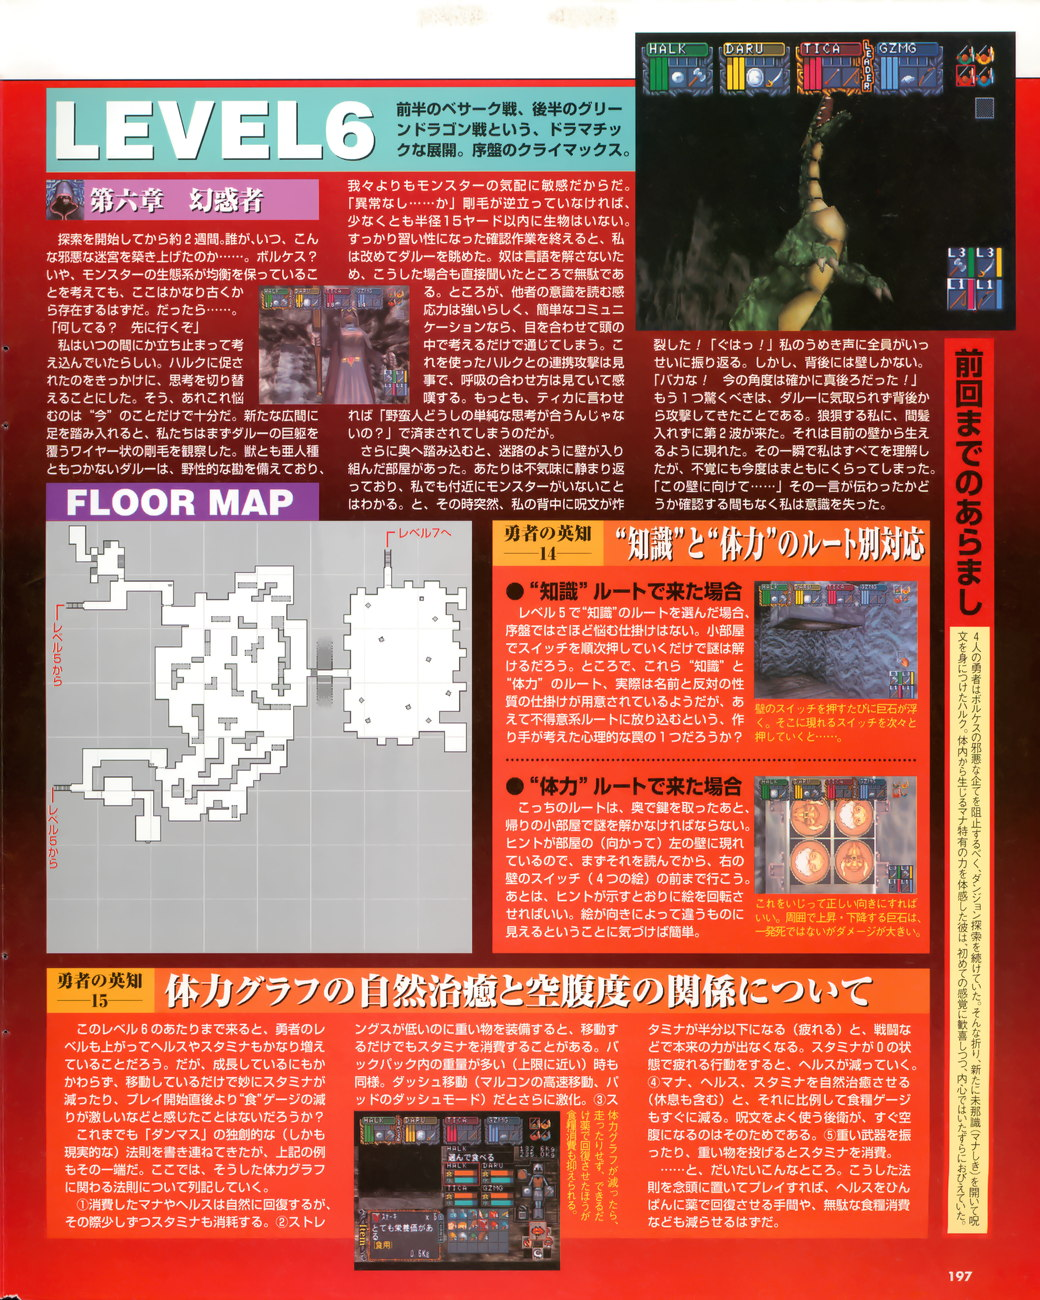 Dungeon Master Nexus Guide published in Japanese magazine 'Sega Saturn Magazine', Vol 14 08 May 1998, Page 197